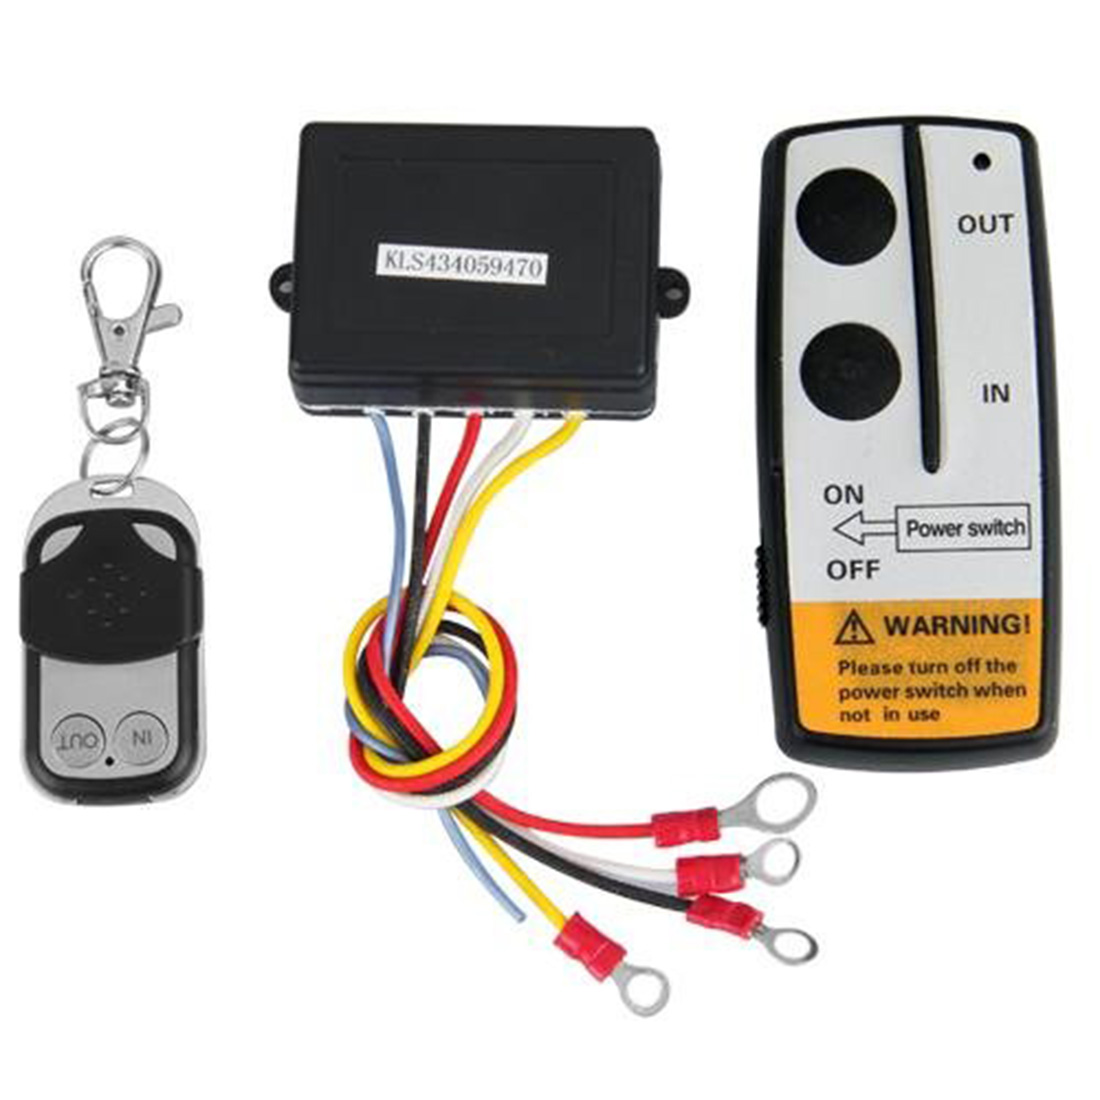 Marsnaska New DC 12V Volt Black Wireless 50FT Remote Control Kit for Winch Latest Indicator Light Universal Switch Handset